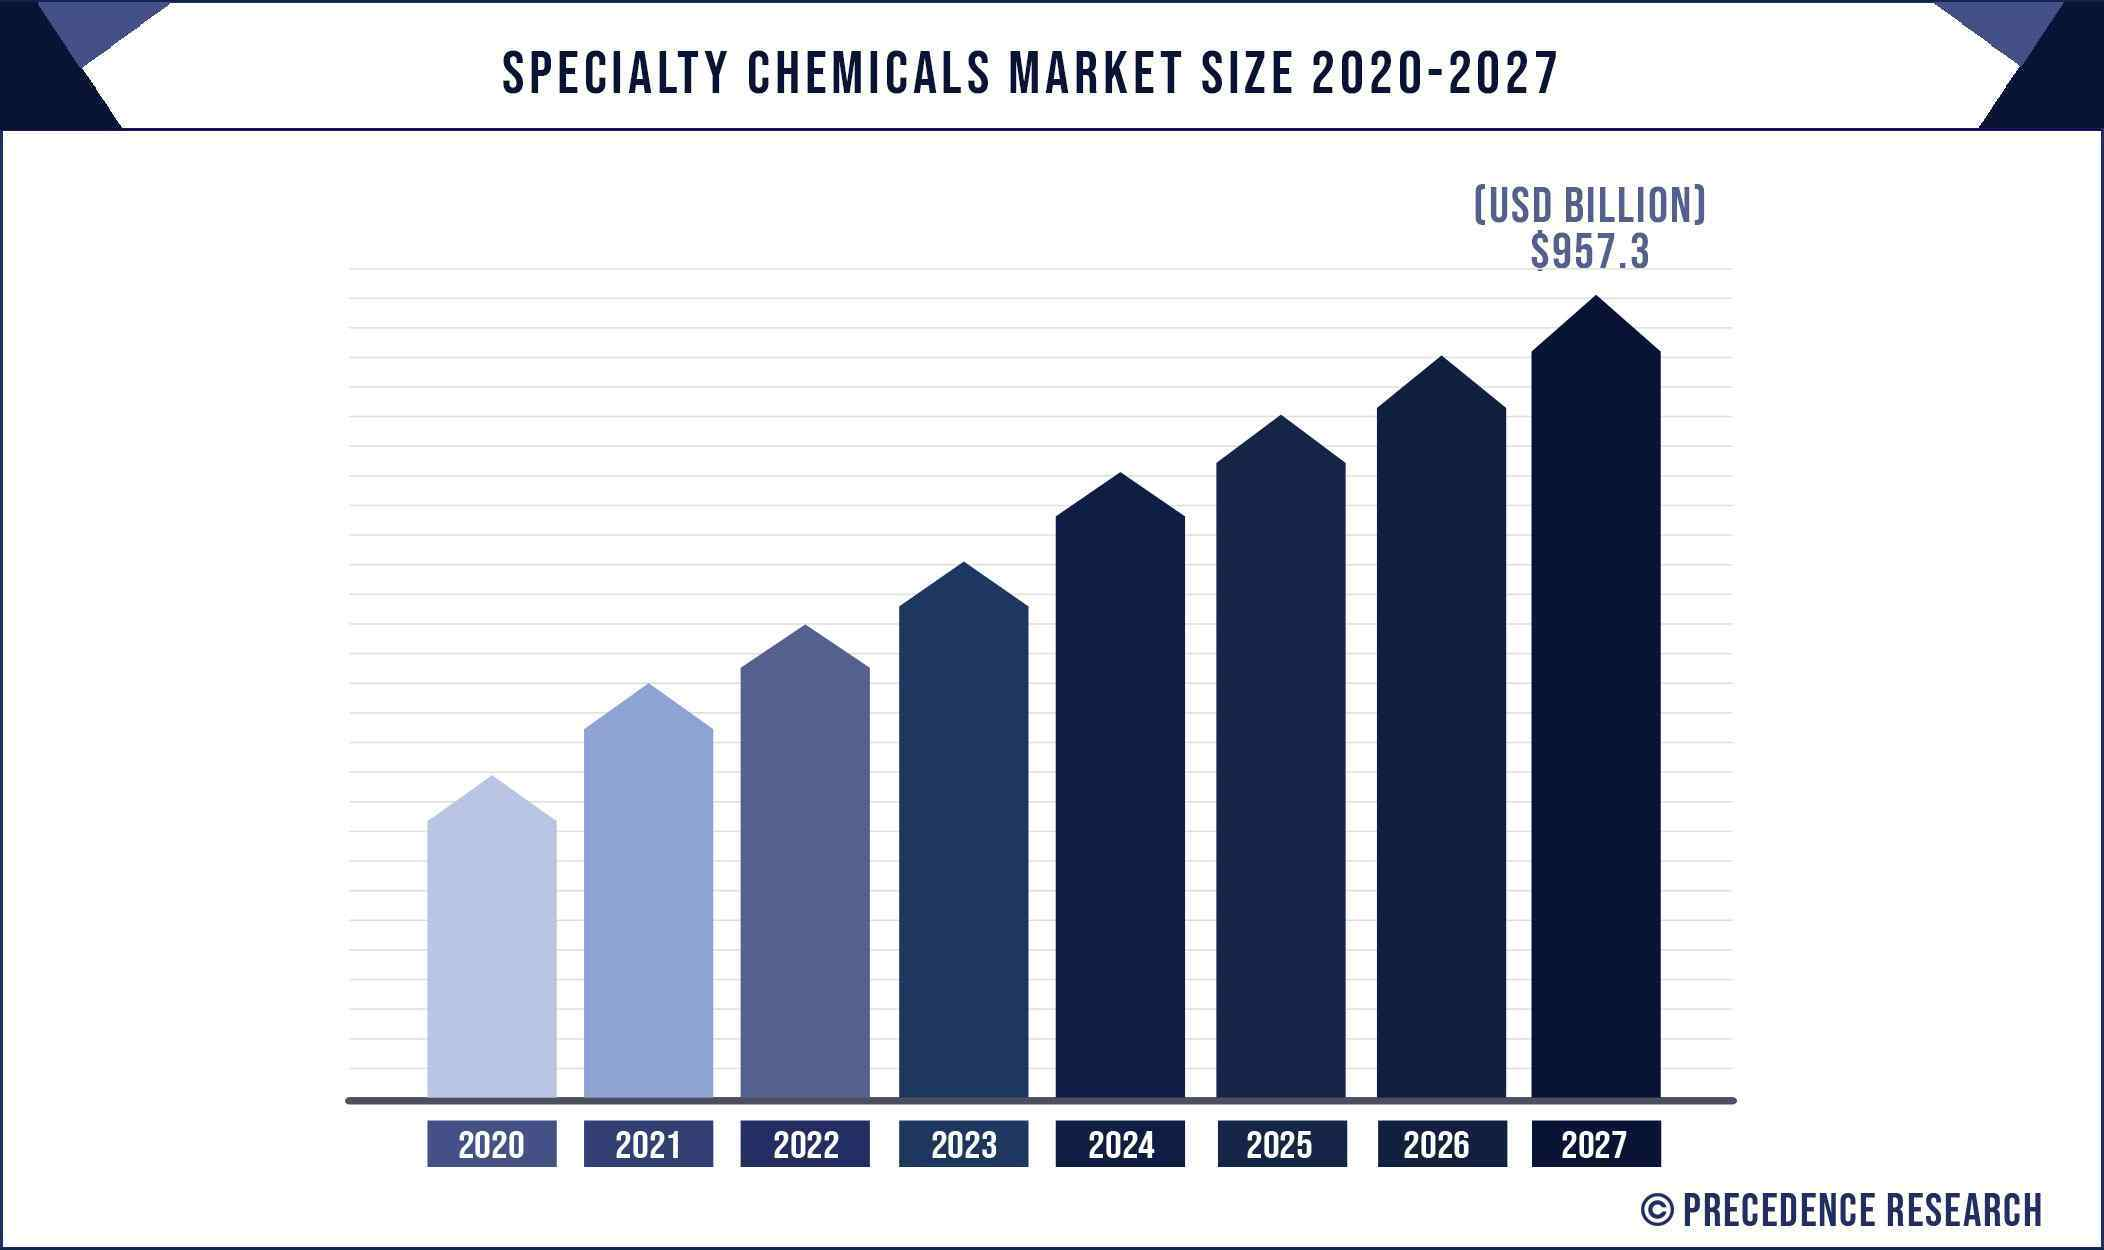 Specialty Chemicals Market Size 2020 to 2027